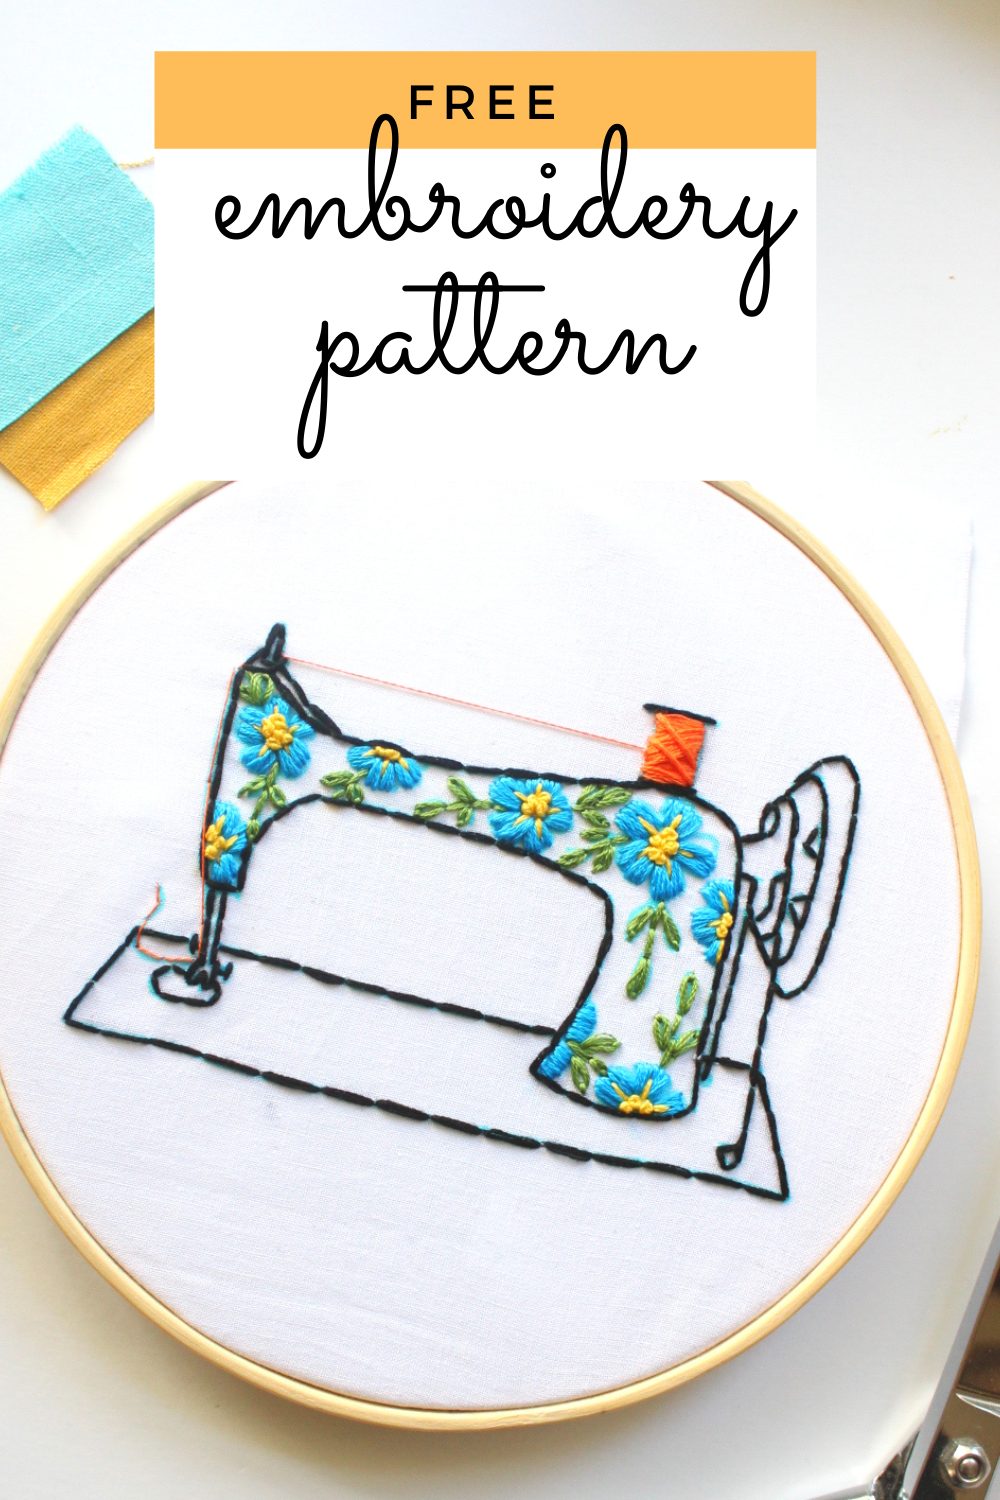 free embroidery pattern with instructions of a vintage sewing machine with a floral pattern on it